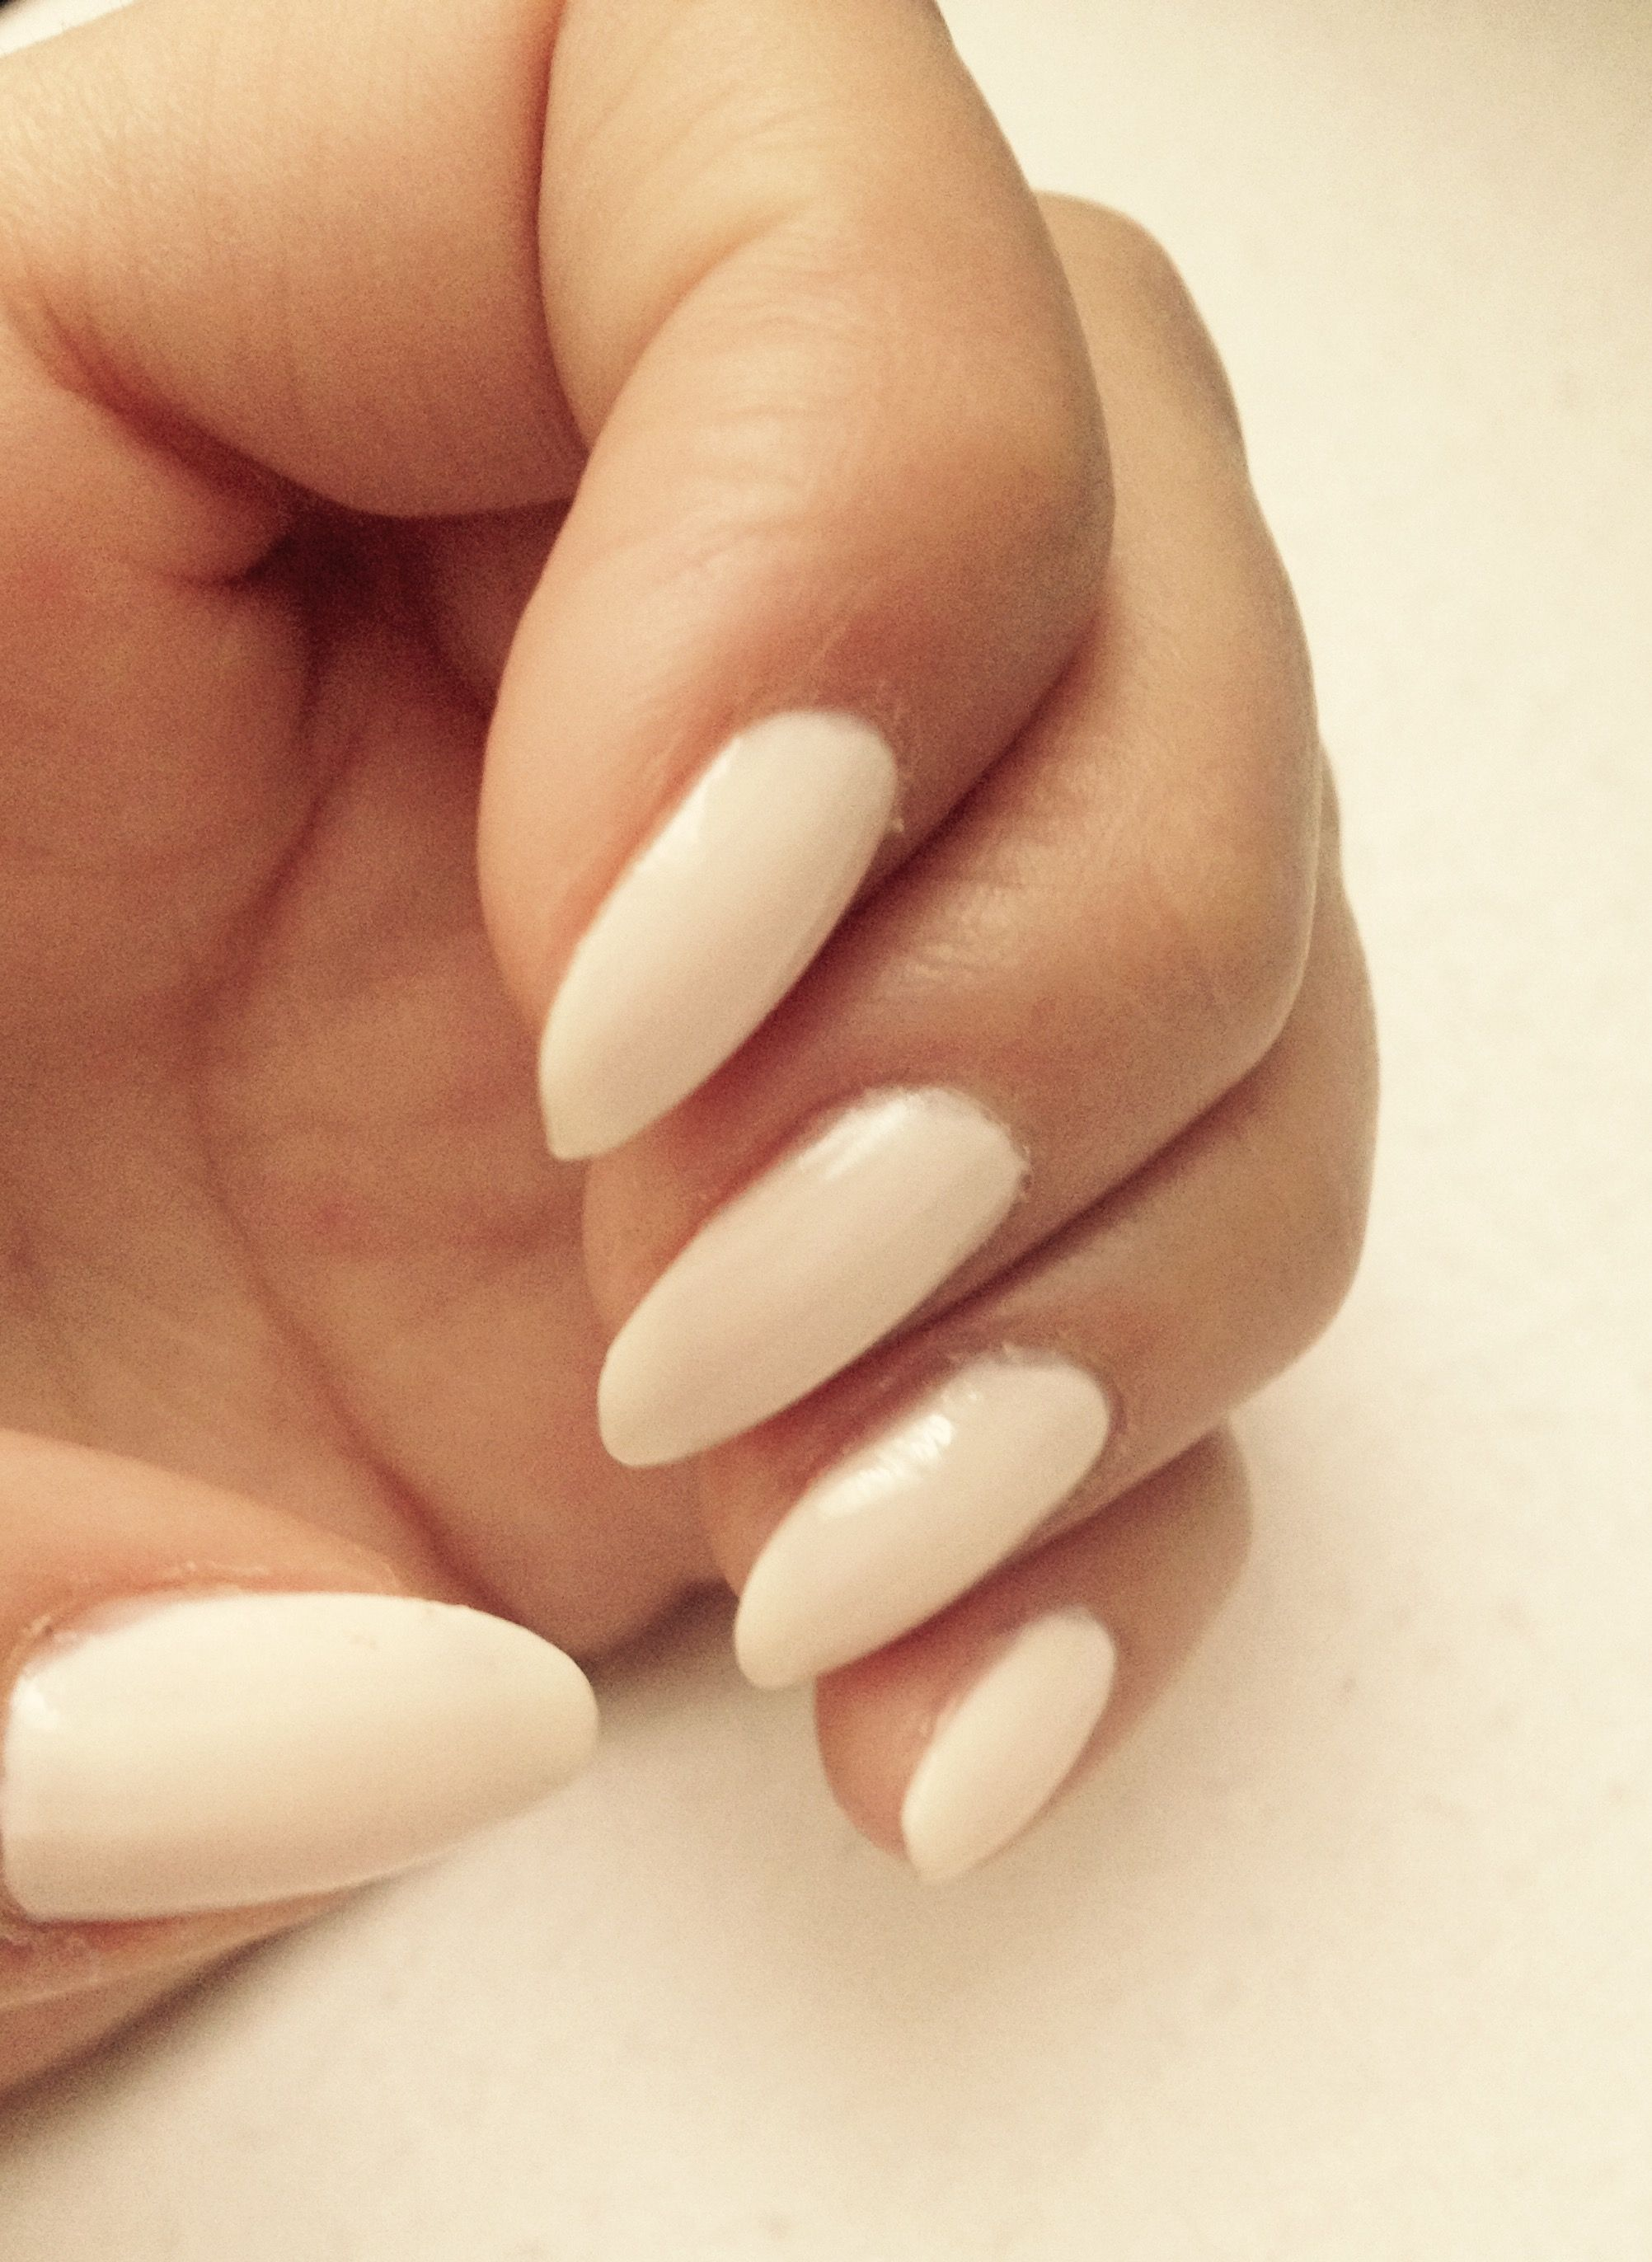 What dreams of nails